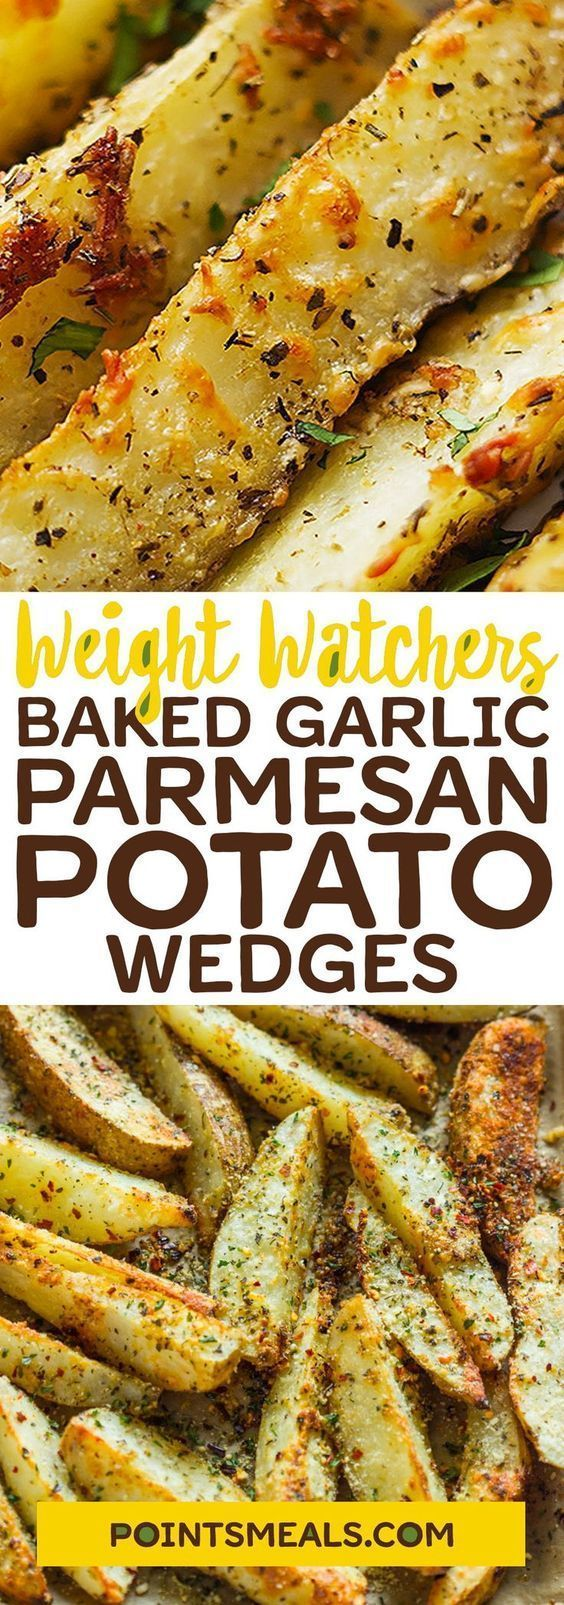 Weight Watchers Recipes with SmartPoints - For Dinner, Lunch or Dessert Weight Watchers Recipes with SmartPoints - For Dinner, Lunch or Dessert